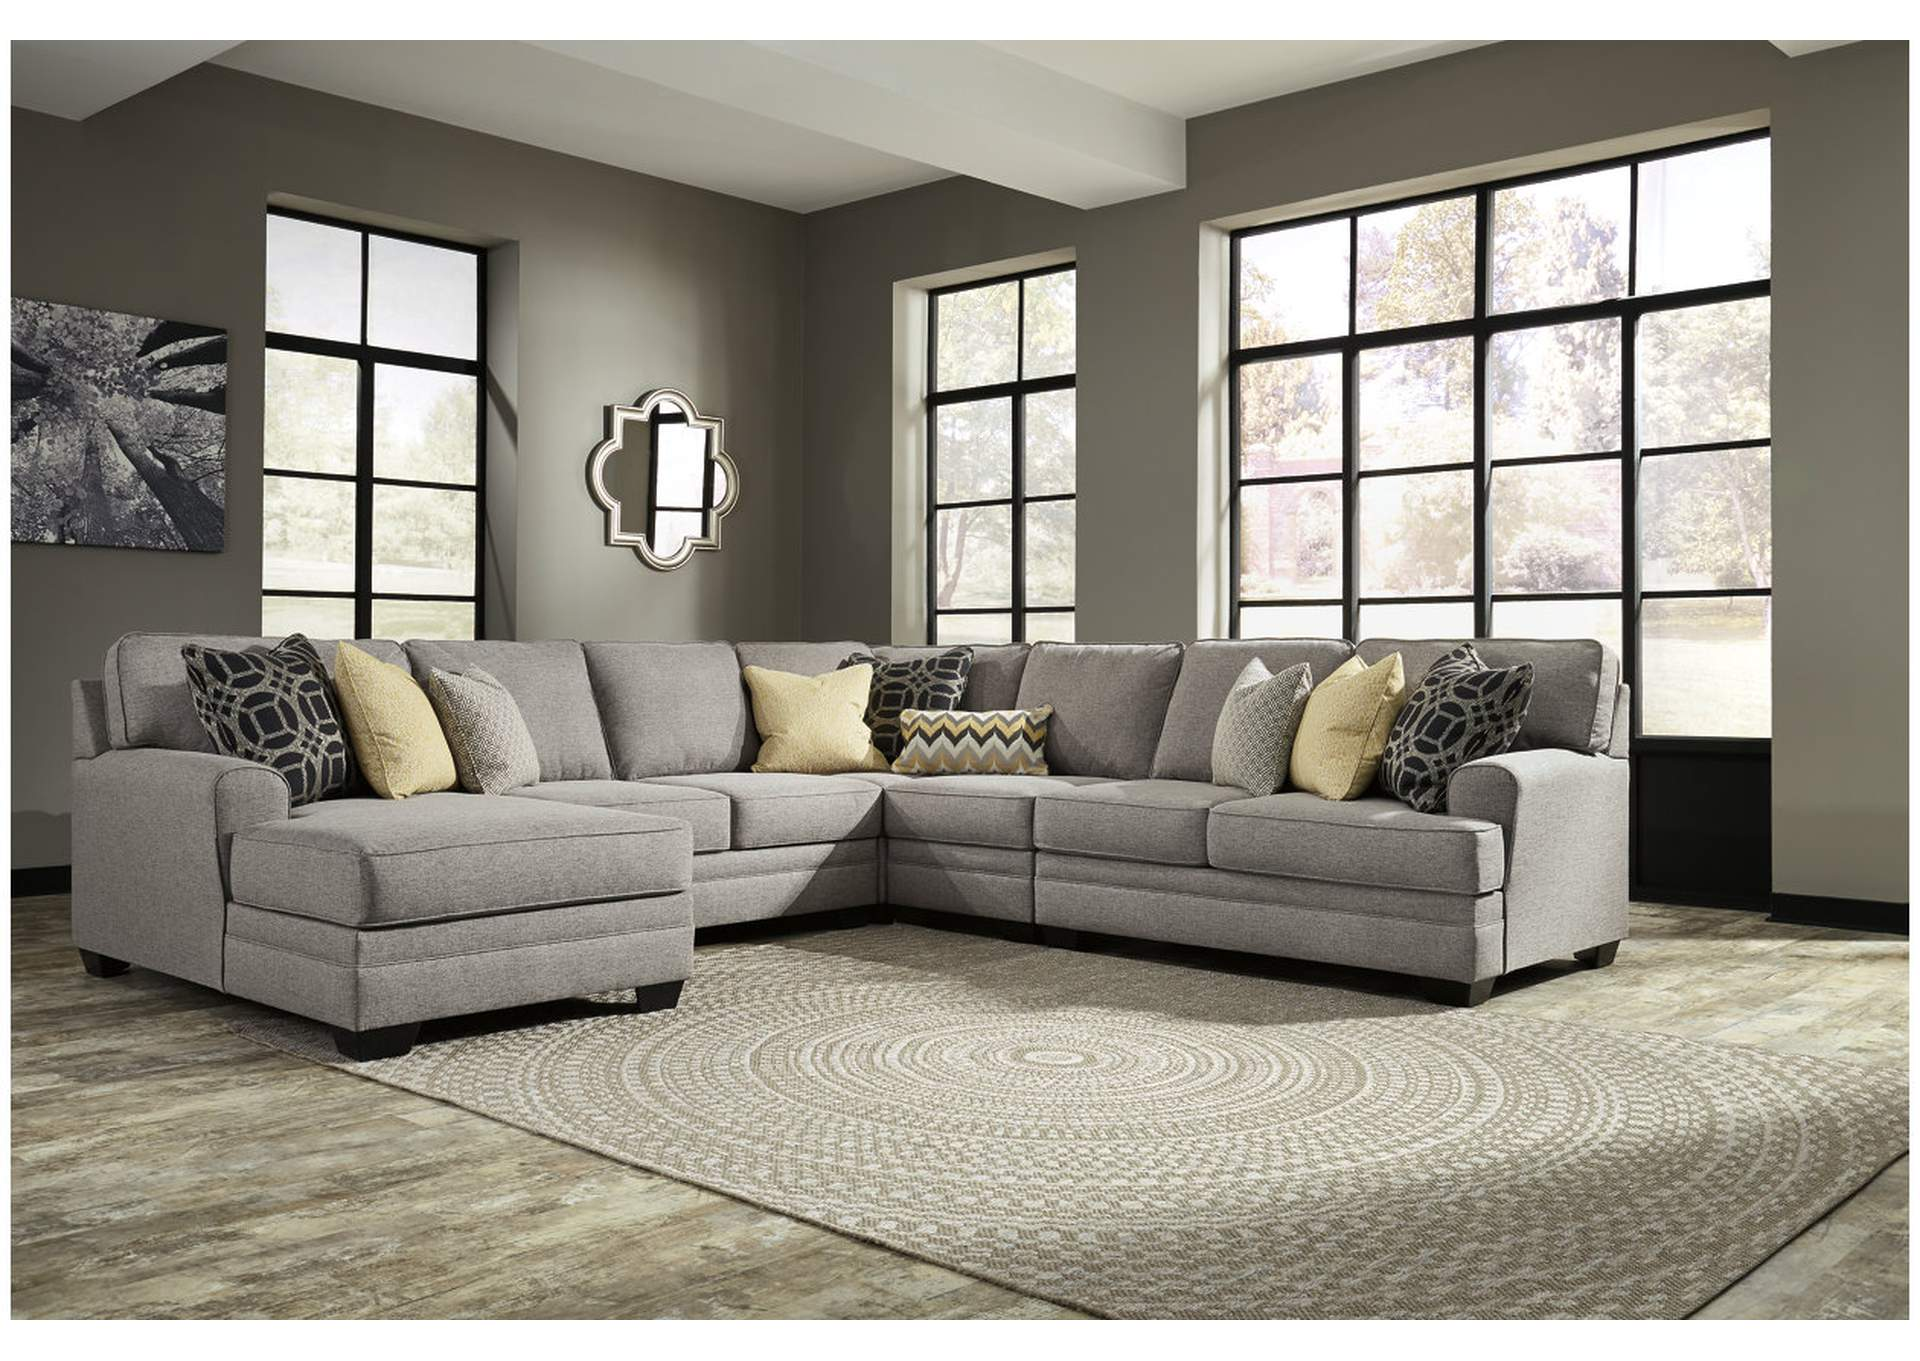 Xlnc Furniture Cresson Pewter Left Facing Corner Chaise Extended Loveseat Sectional